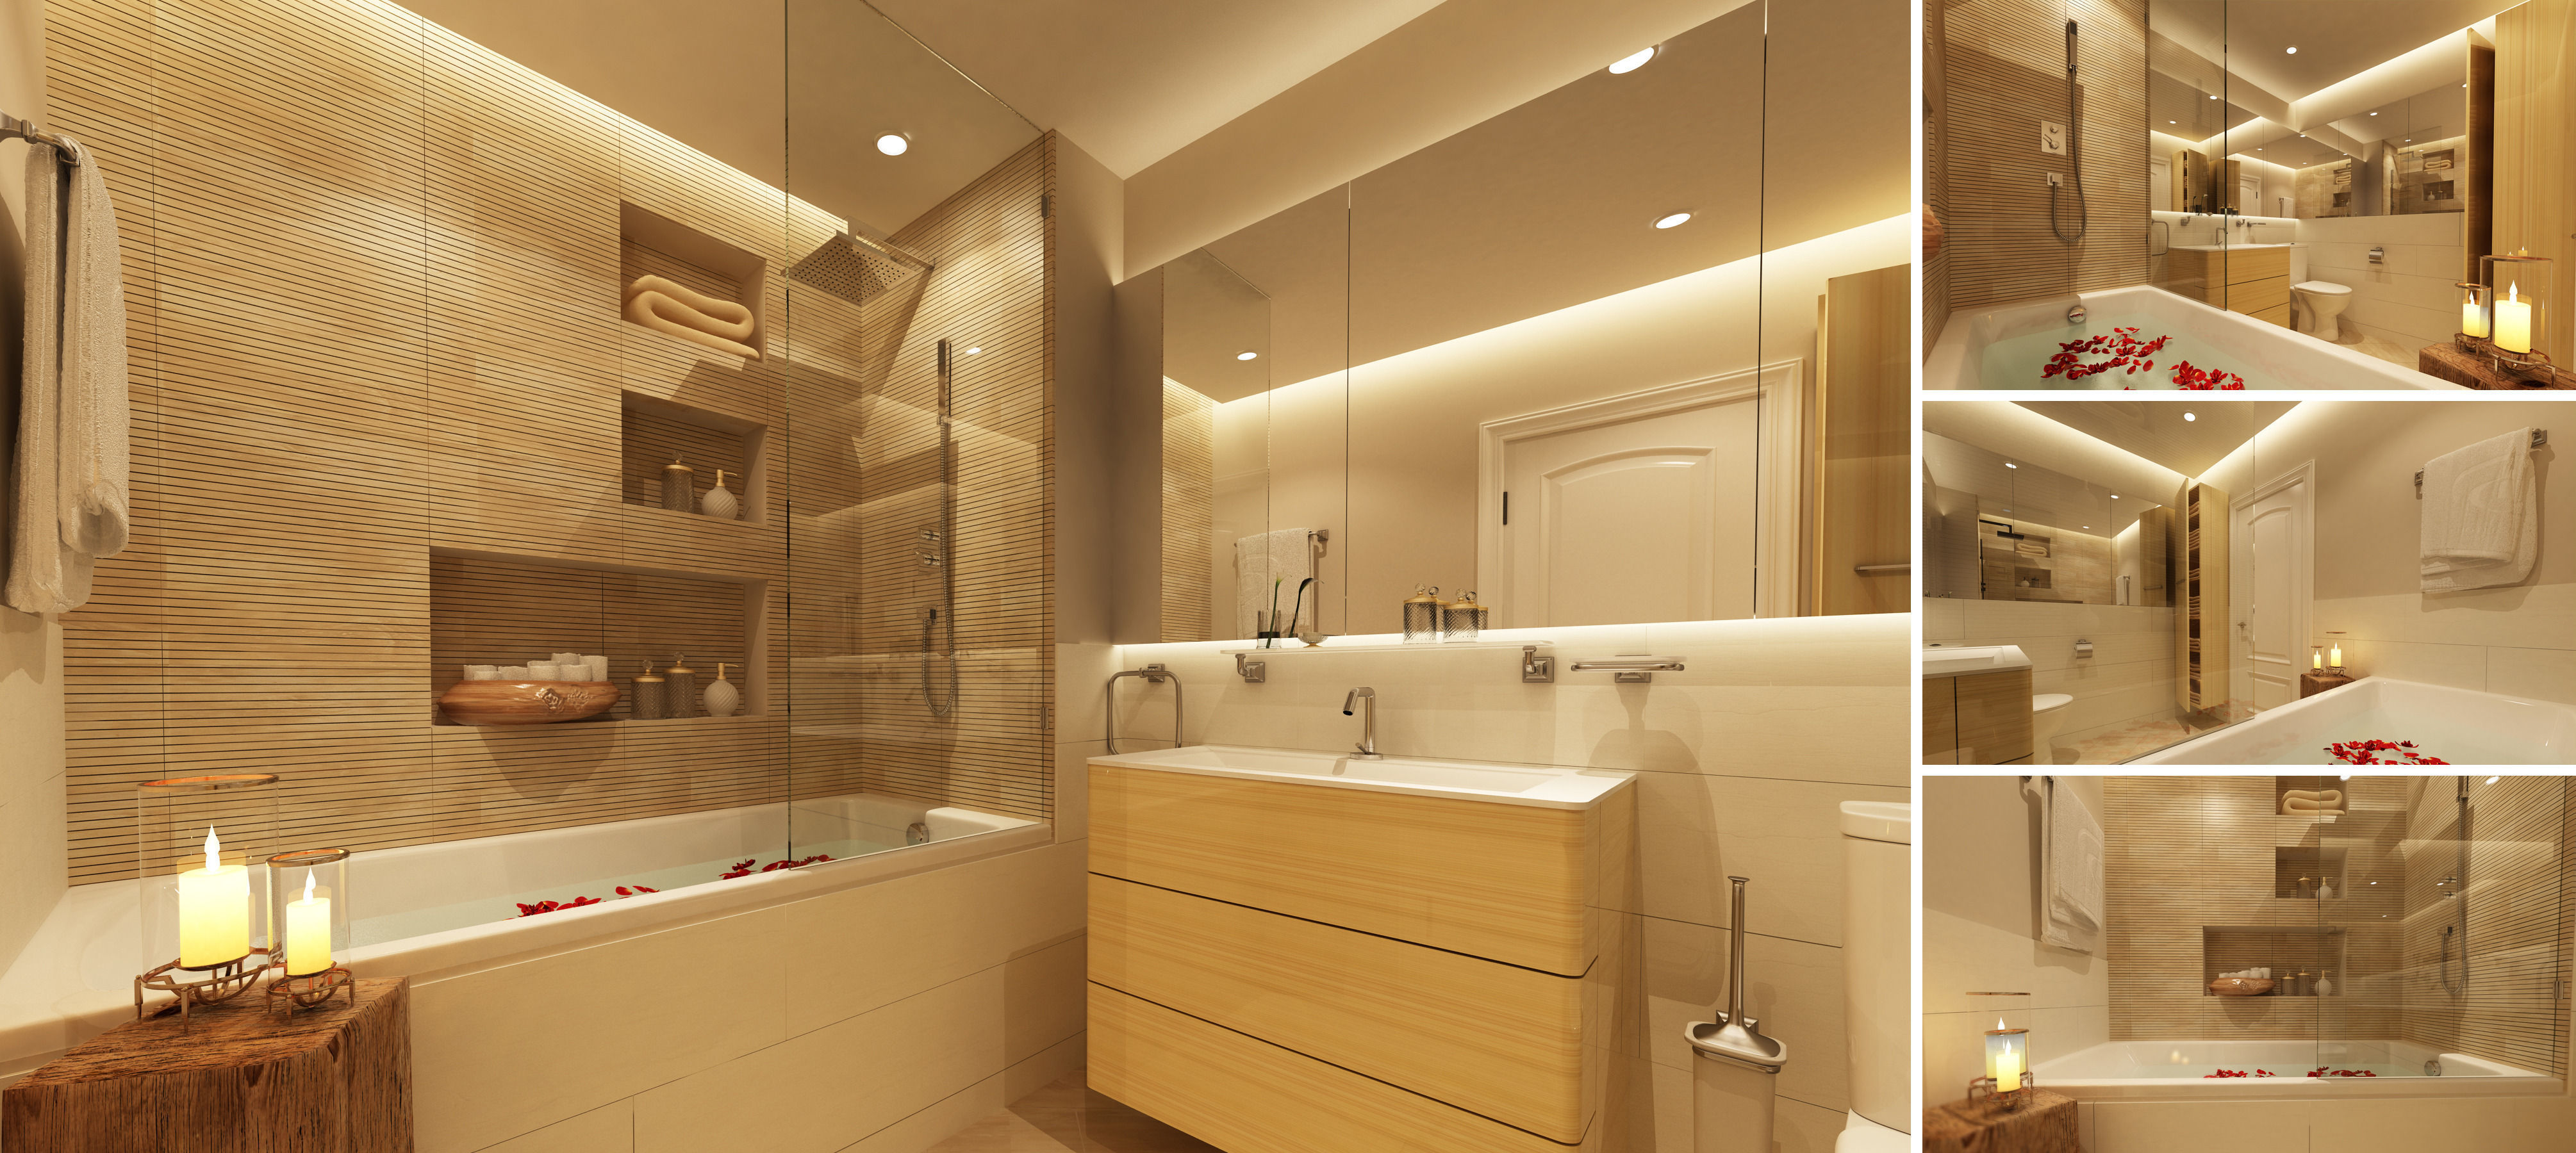 Master bathroom 3d model max for Bathroom model ideas